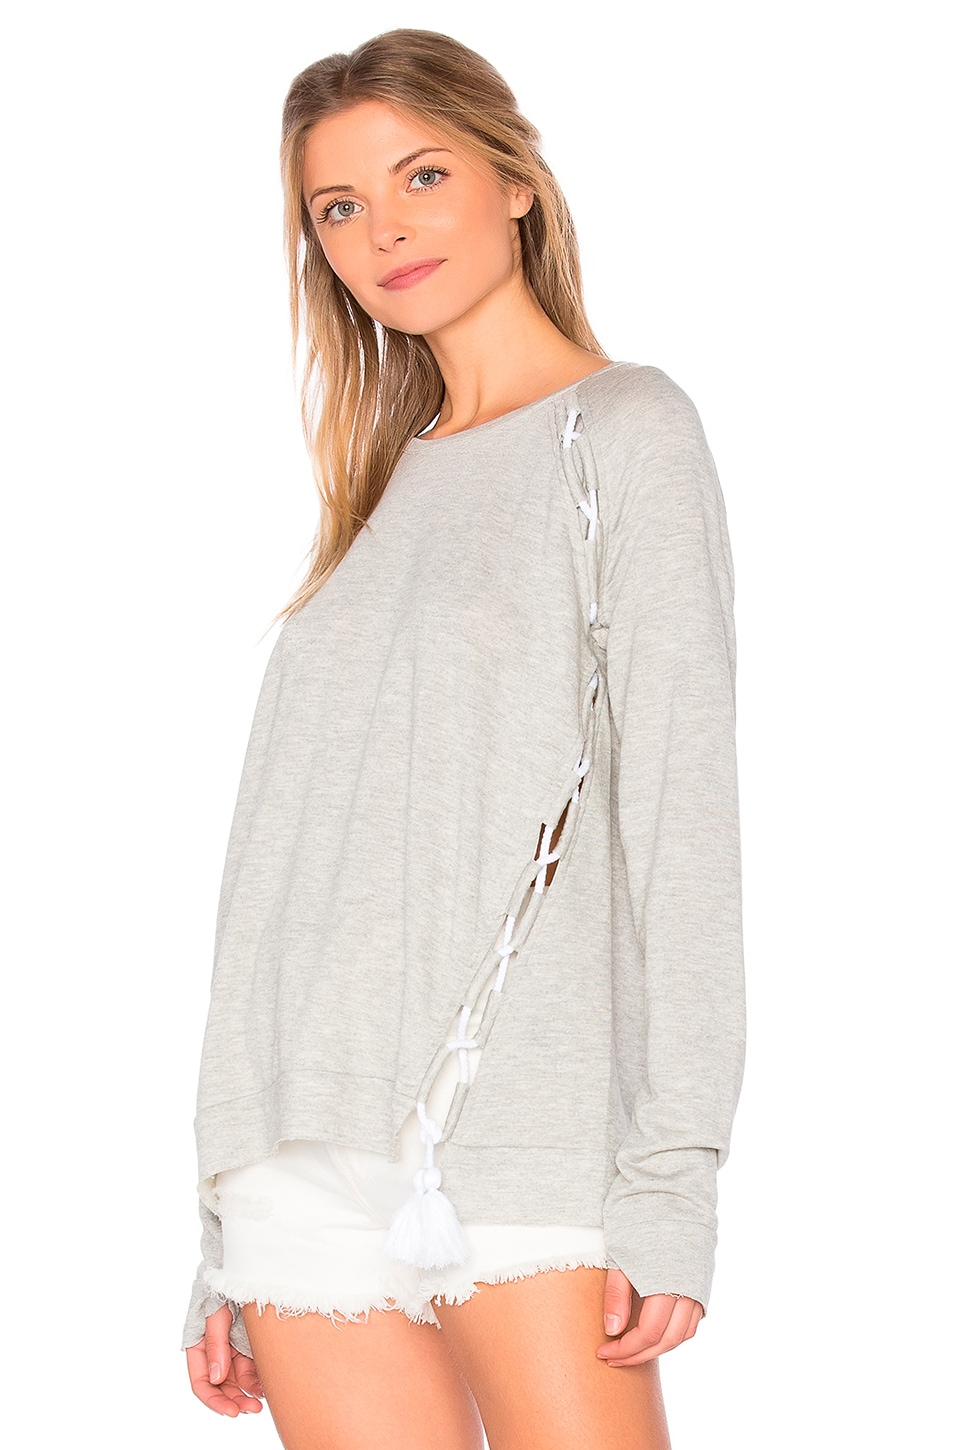 Ryder Sweatshirt by Generation Love